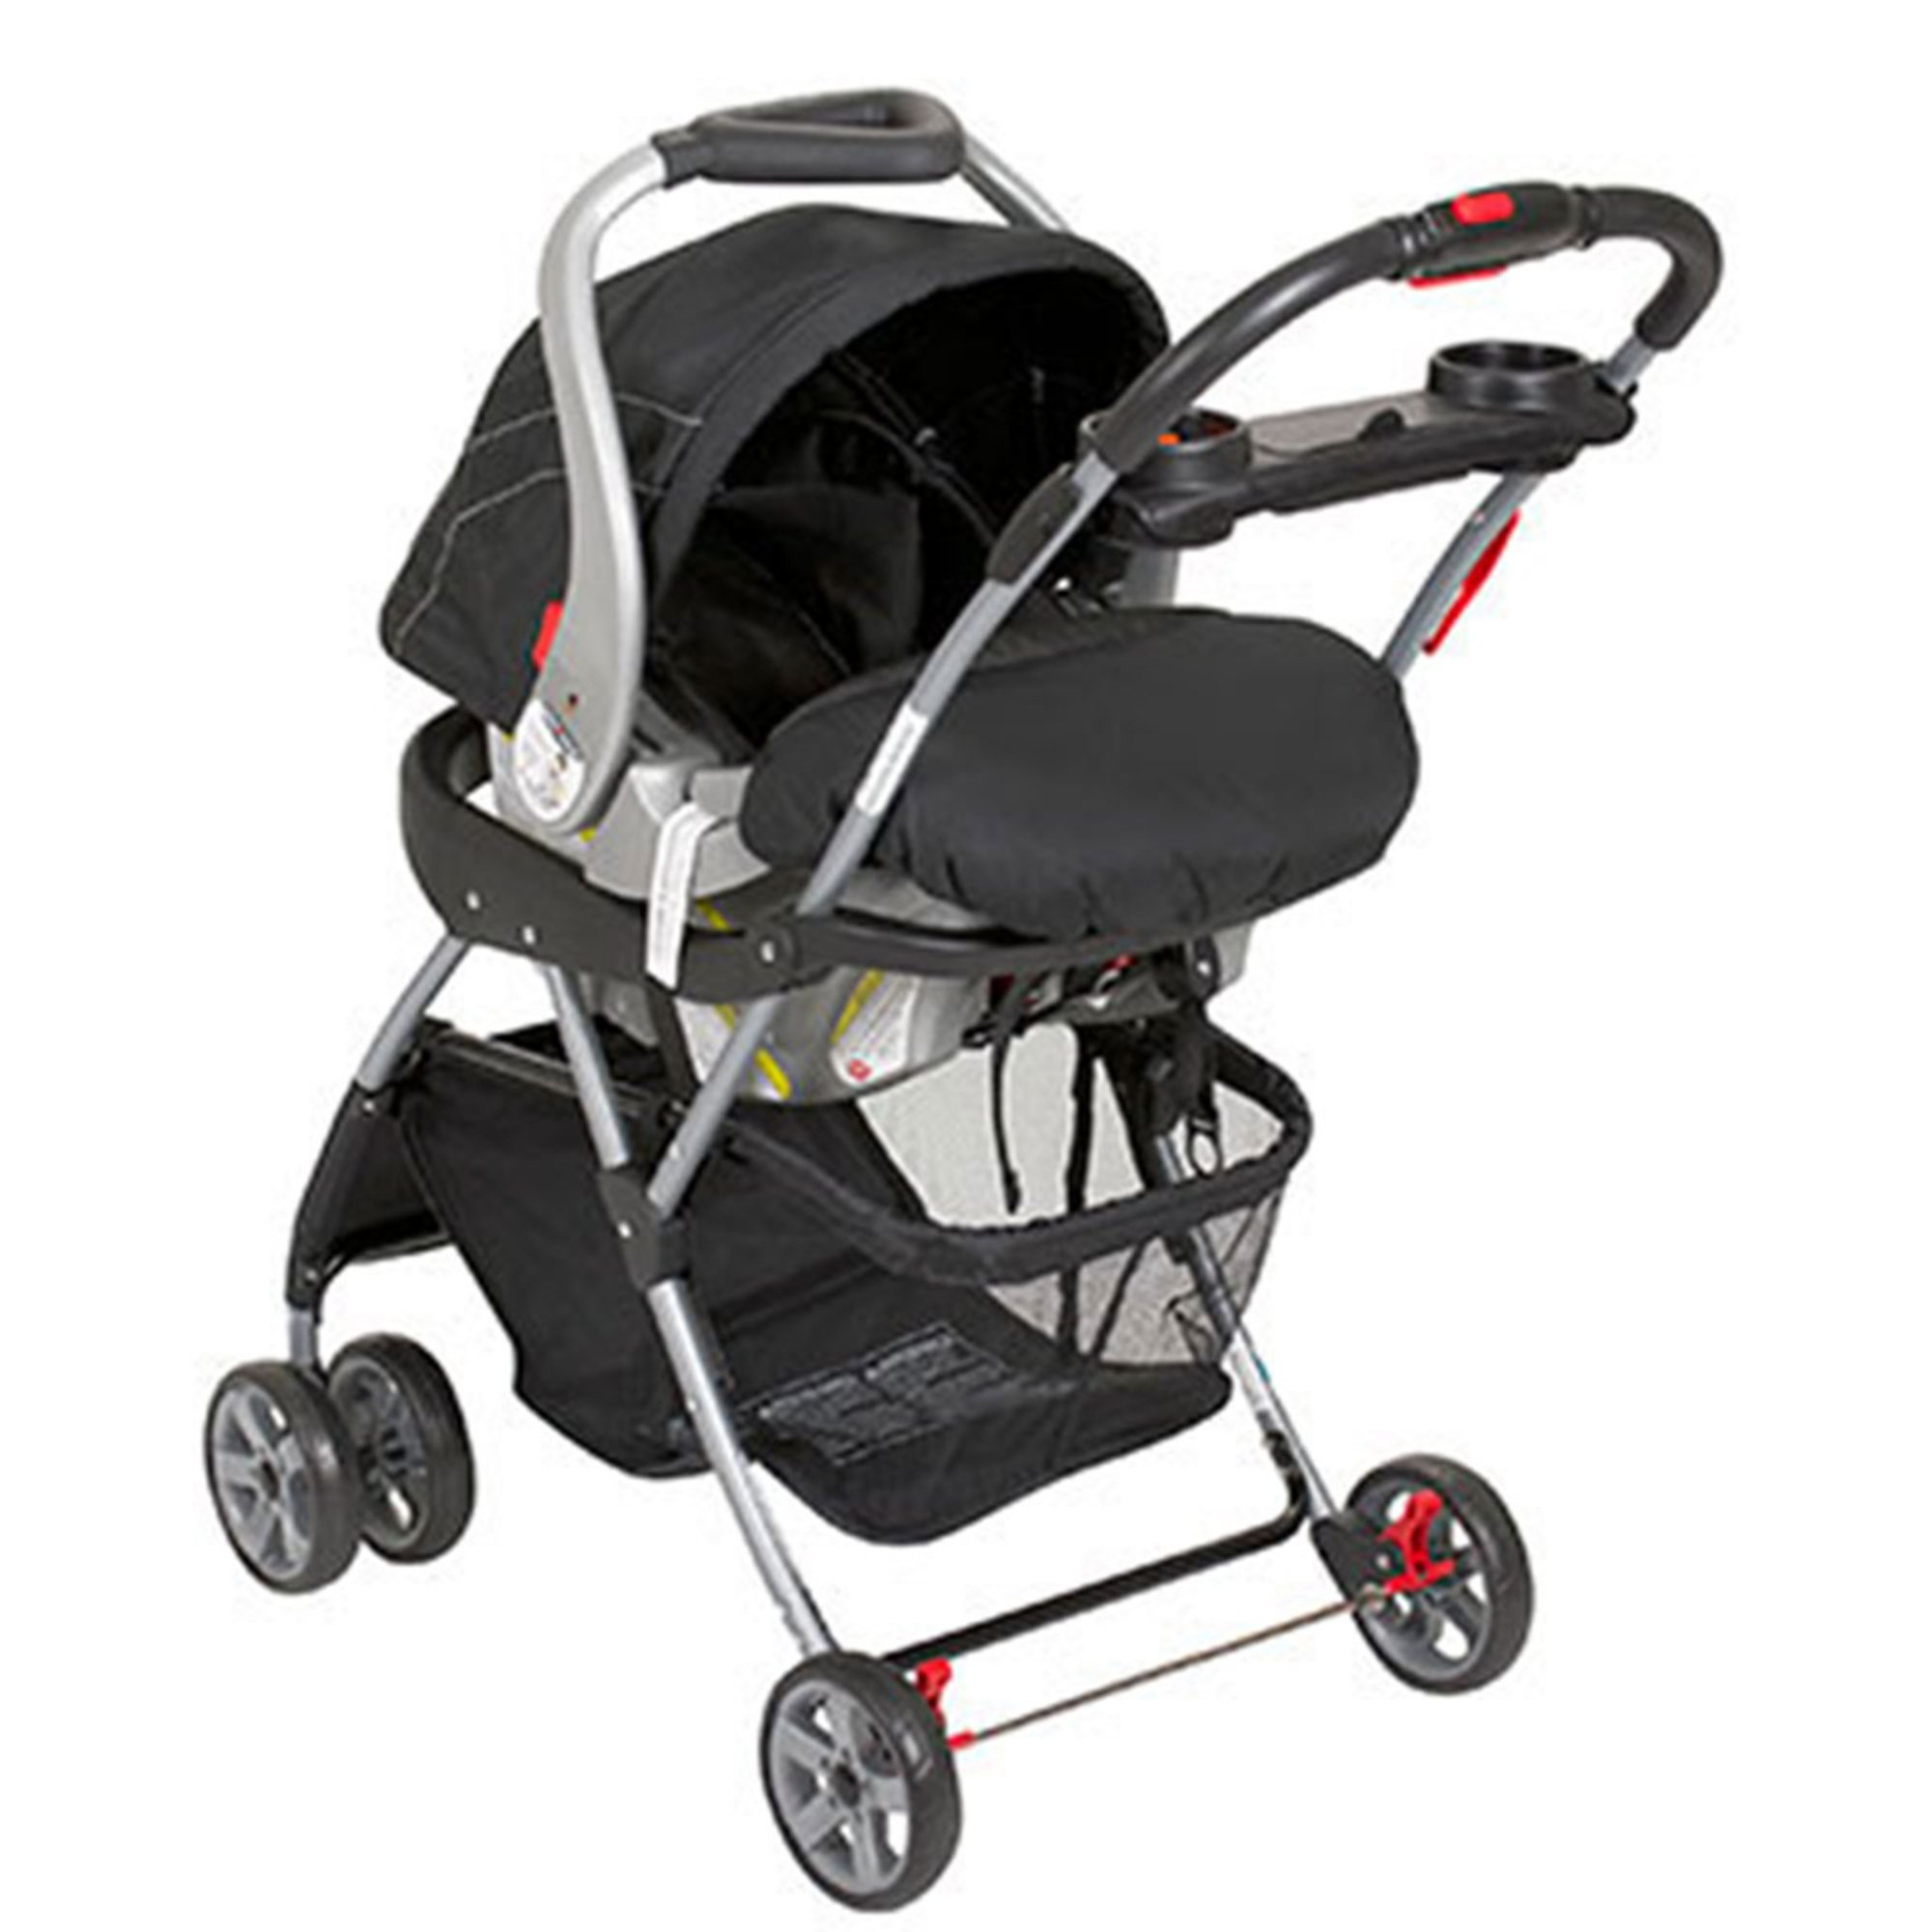 When To Switch From Car Seat To Stroller Baby Trend Snap N Go Ex Universal Infant Car Seat Stroller